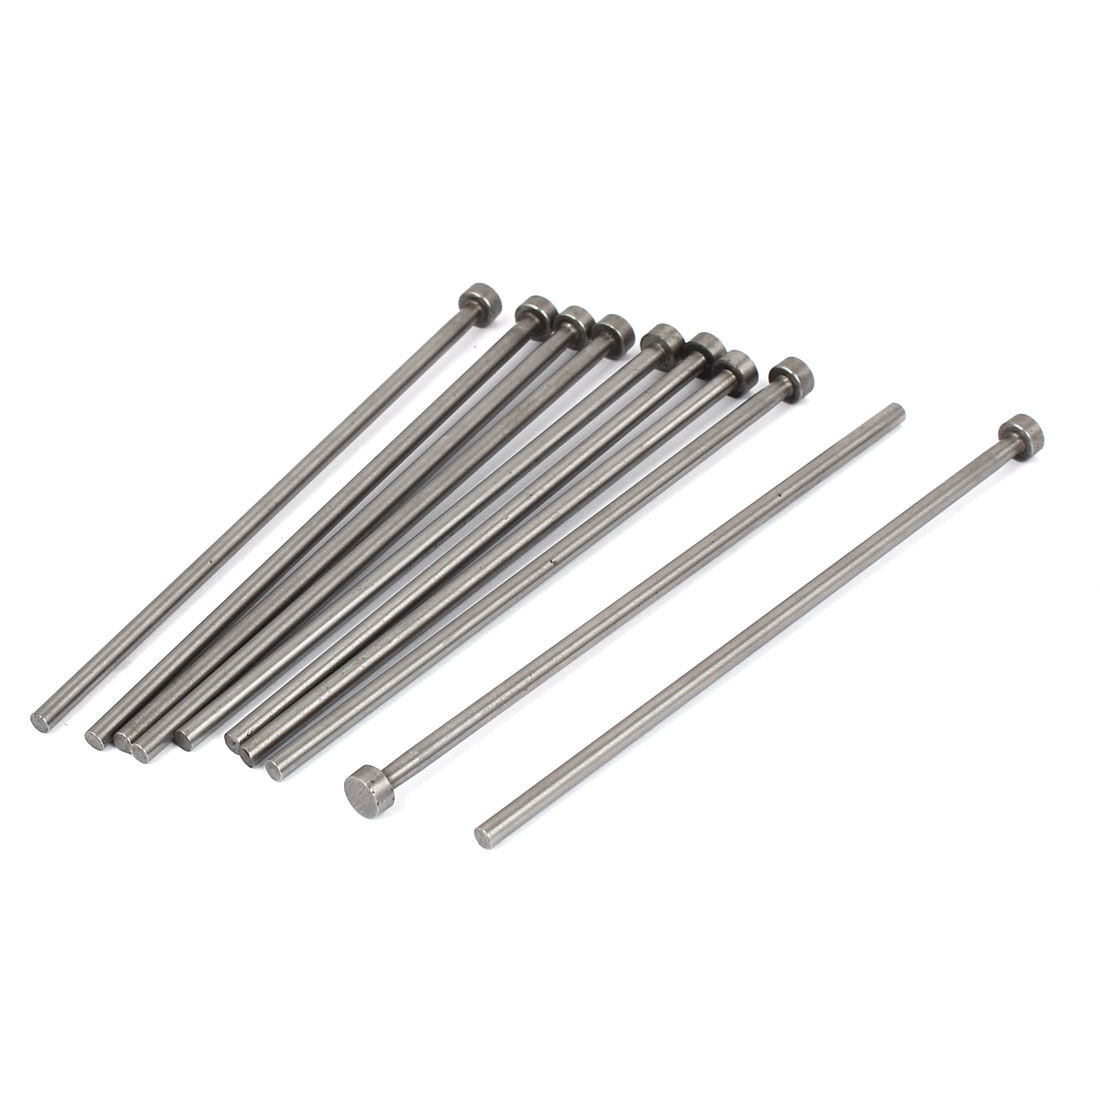 6mm x 105mm Metric Metal Straight Ejector Pins Silver Gray 10pcs